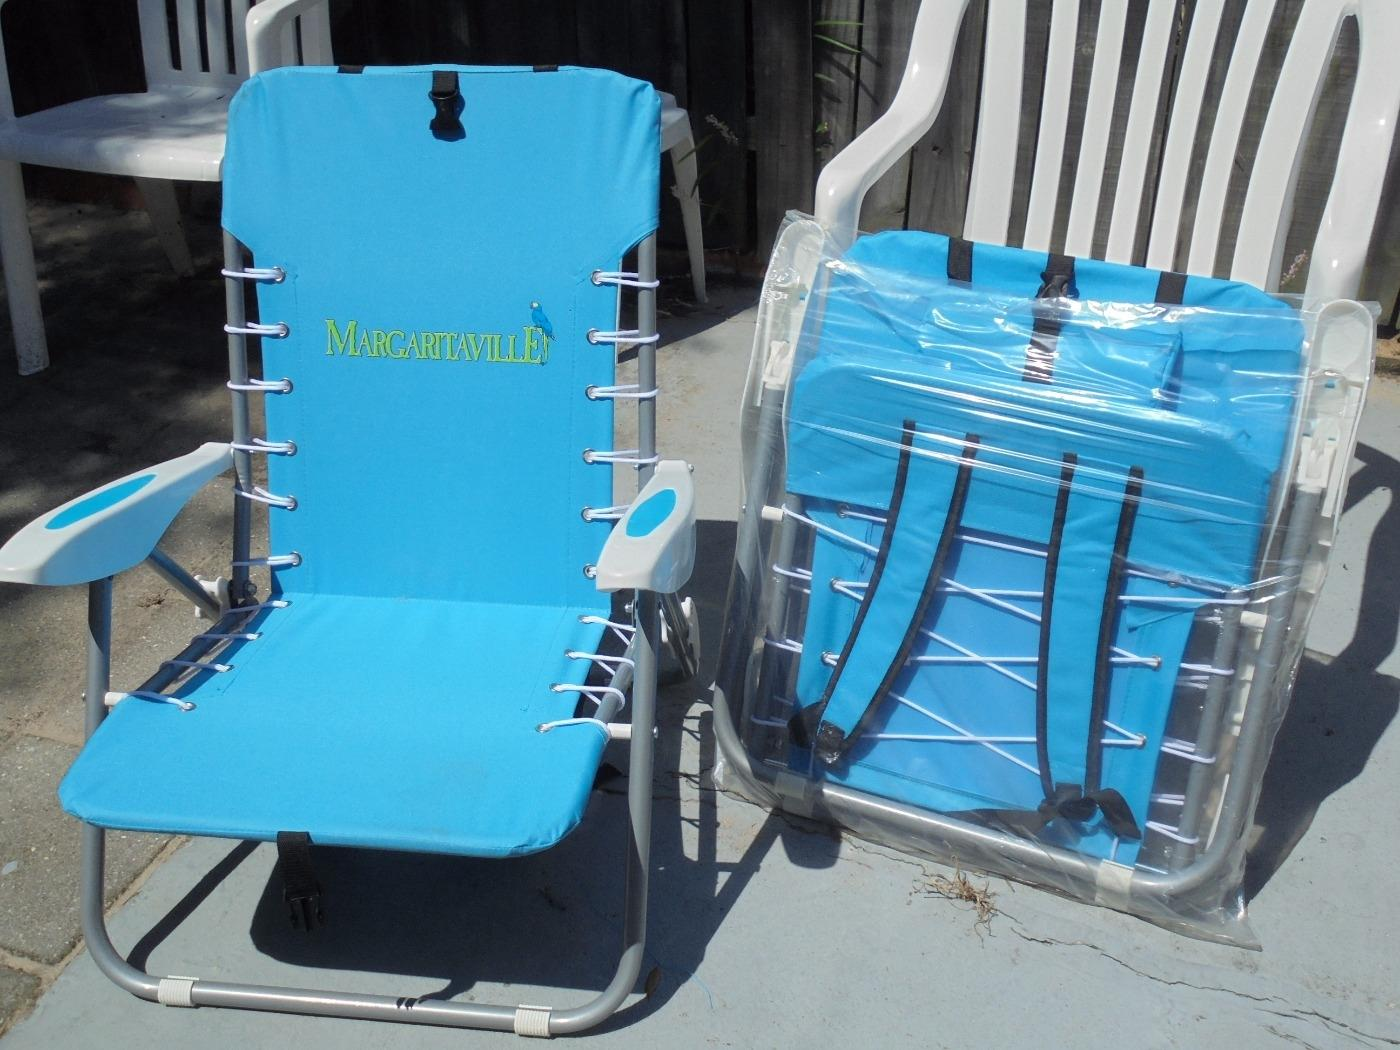 find more 2 new margaritaville jimmy buffett backpack beach chairs for sale at up to 90 off. Black Bedroom Furniture Sets. Home Design Ideas